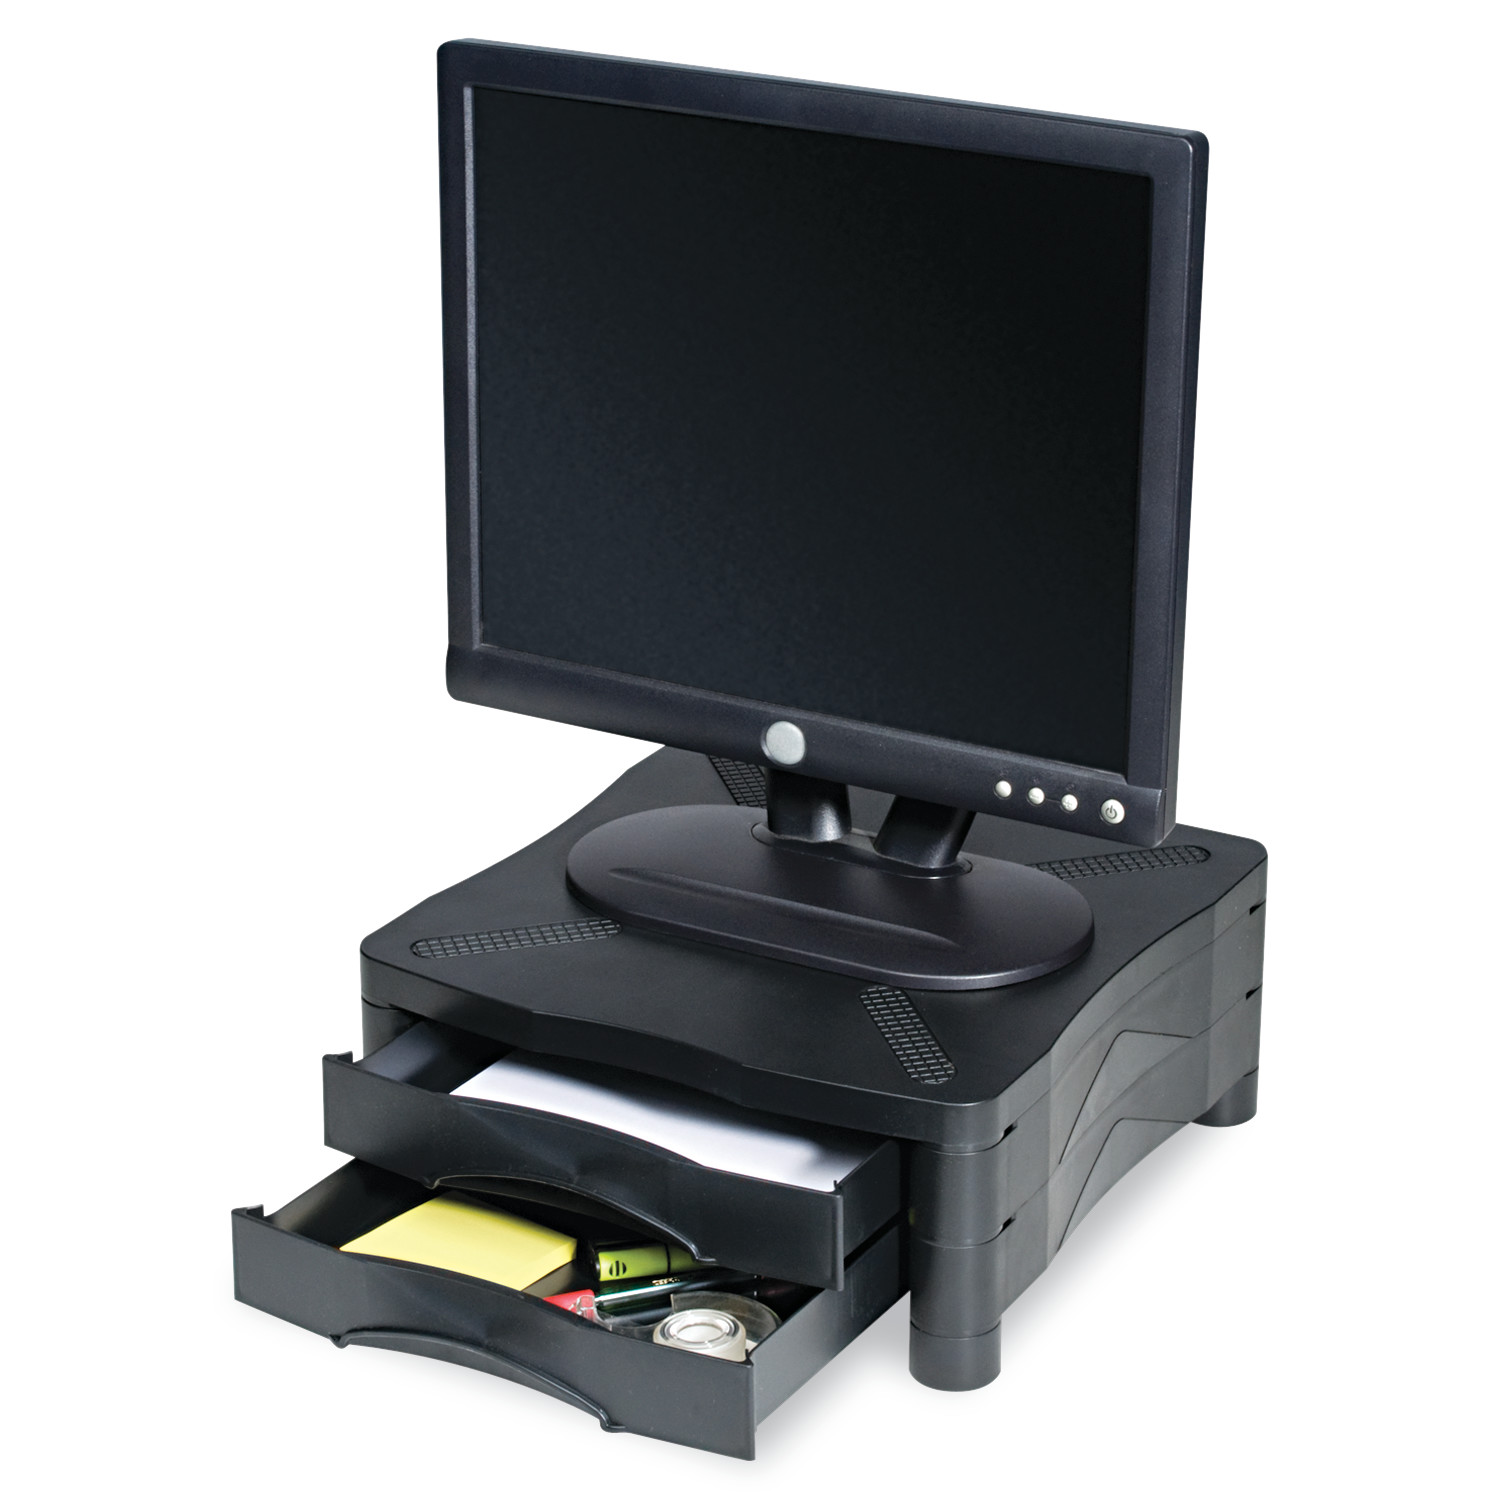 Kelly Computer Supply Adjustable Monitor Stand w/Double Storage Drawer, 13 x 13-1/2 x 4-3/4 to 5-3/4 -KCS10369